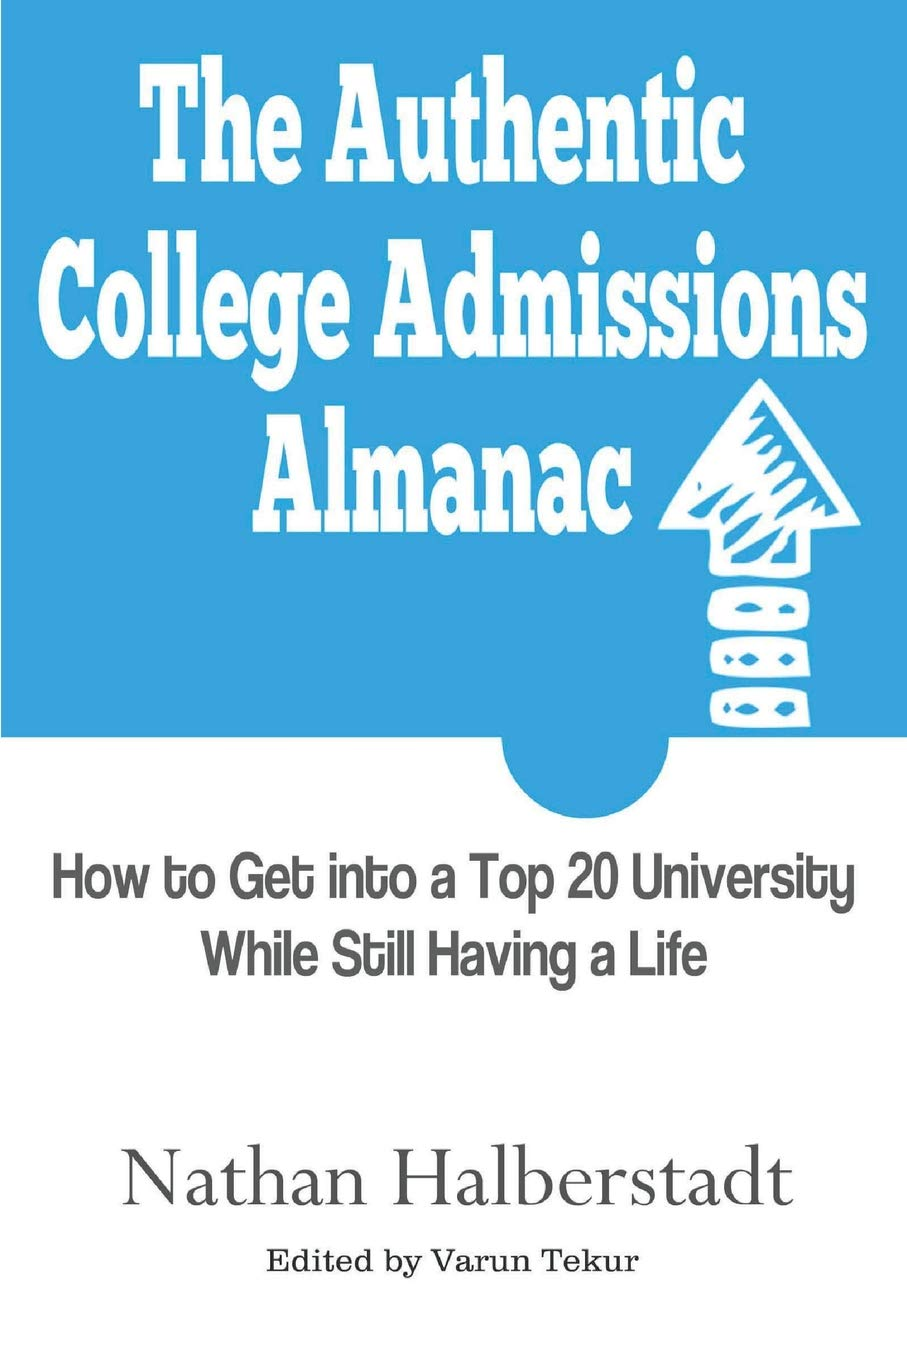 The Authentic College Admissions Almanac: How to Get into a Top 20 University While Still Having a Life pdf